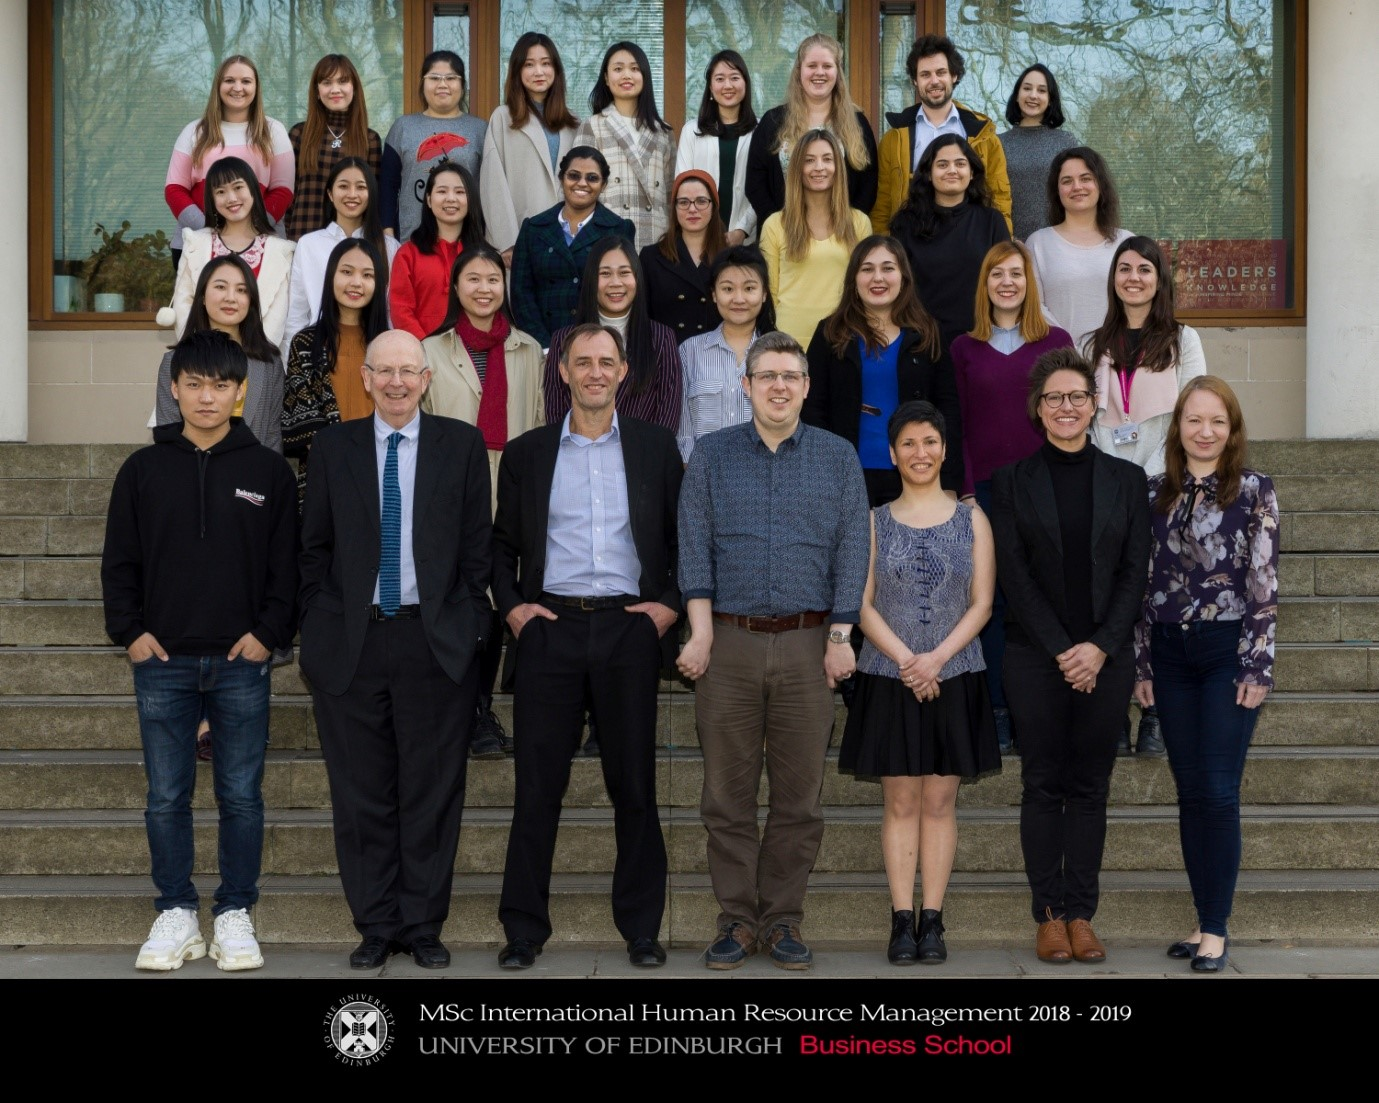 University of Edinburgh Masters in Humans Resource Management students